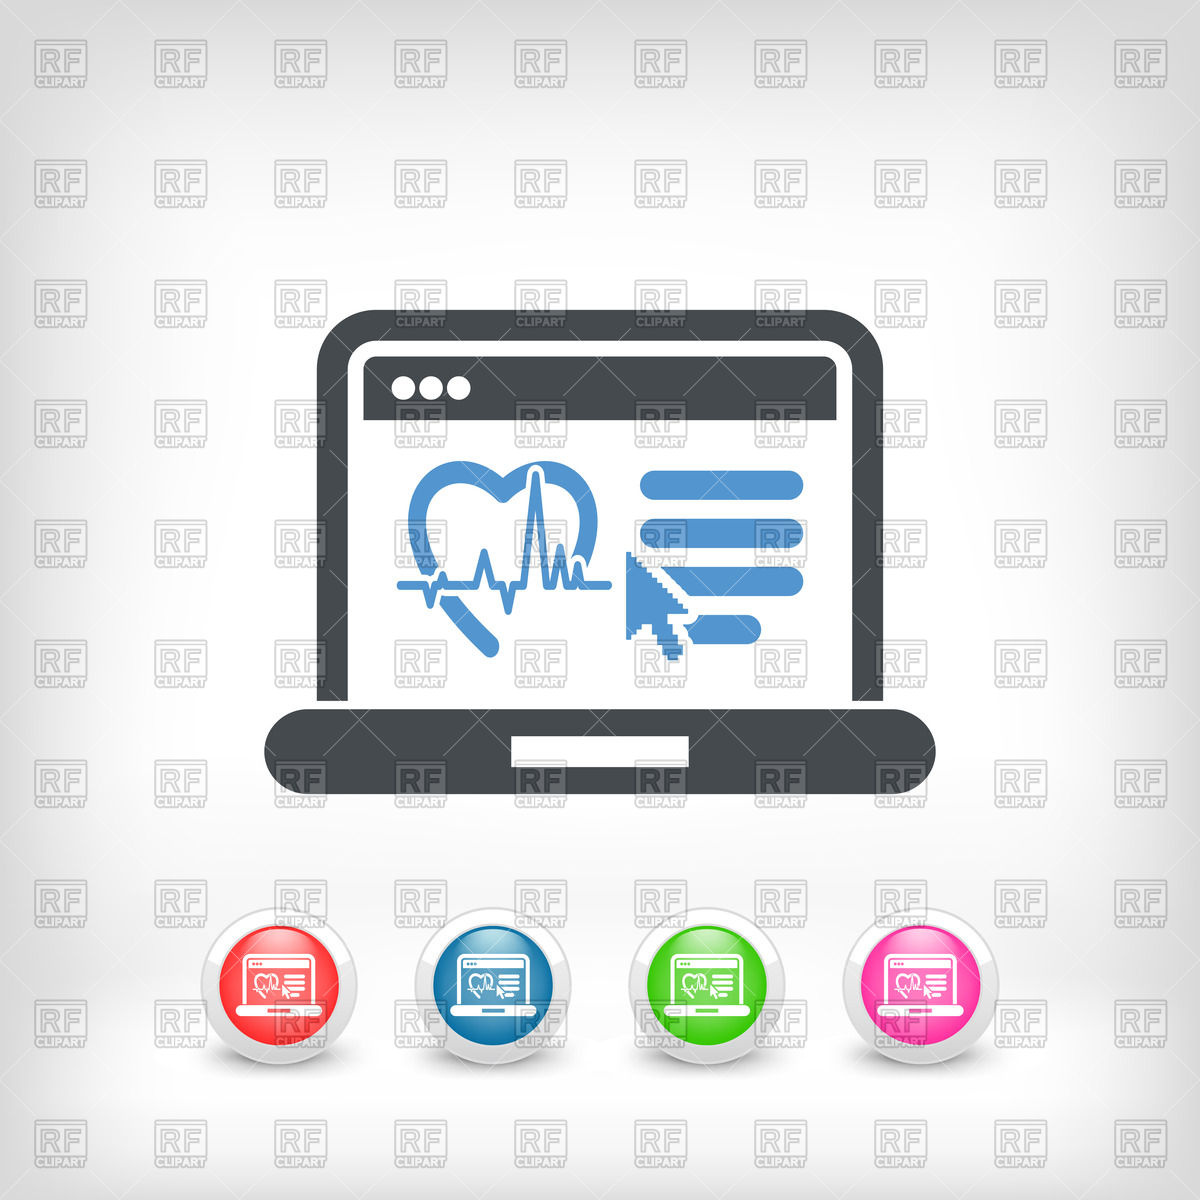 Medical background with ECG pulse tracing Vector Image #8028.